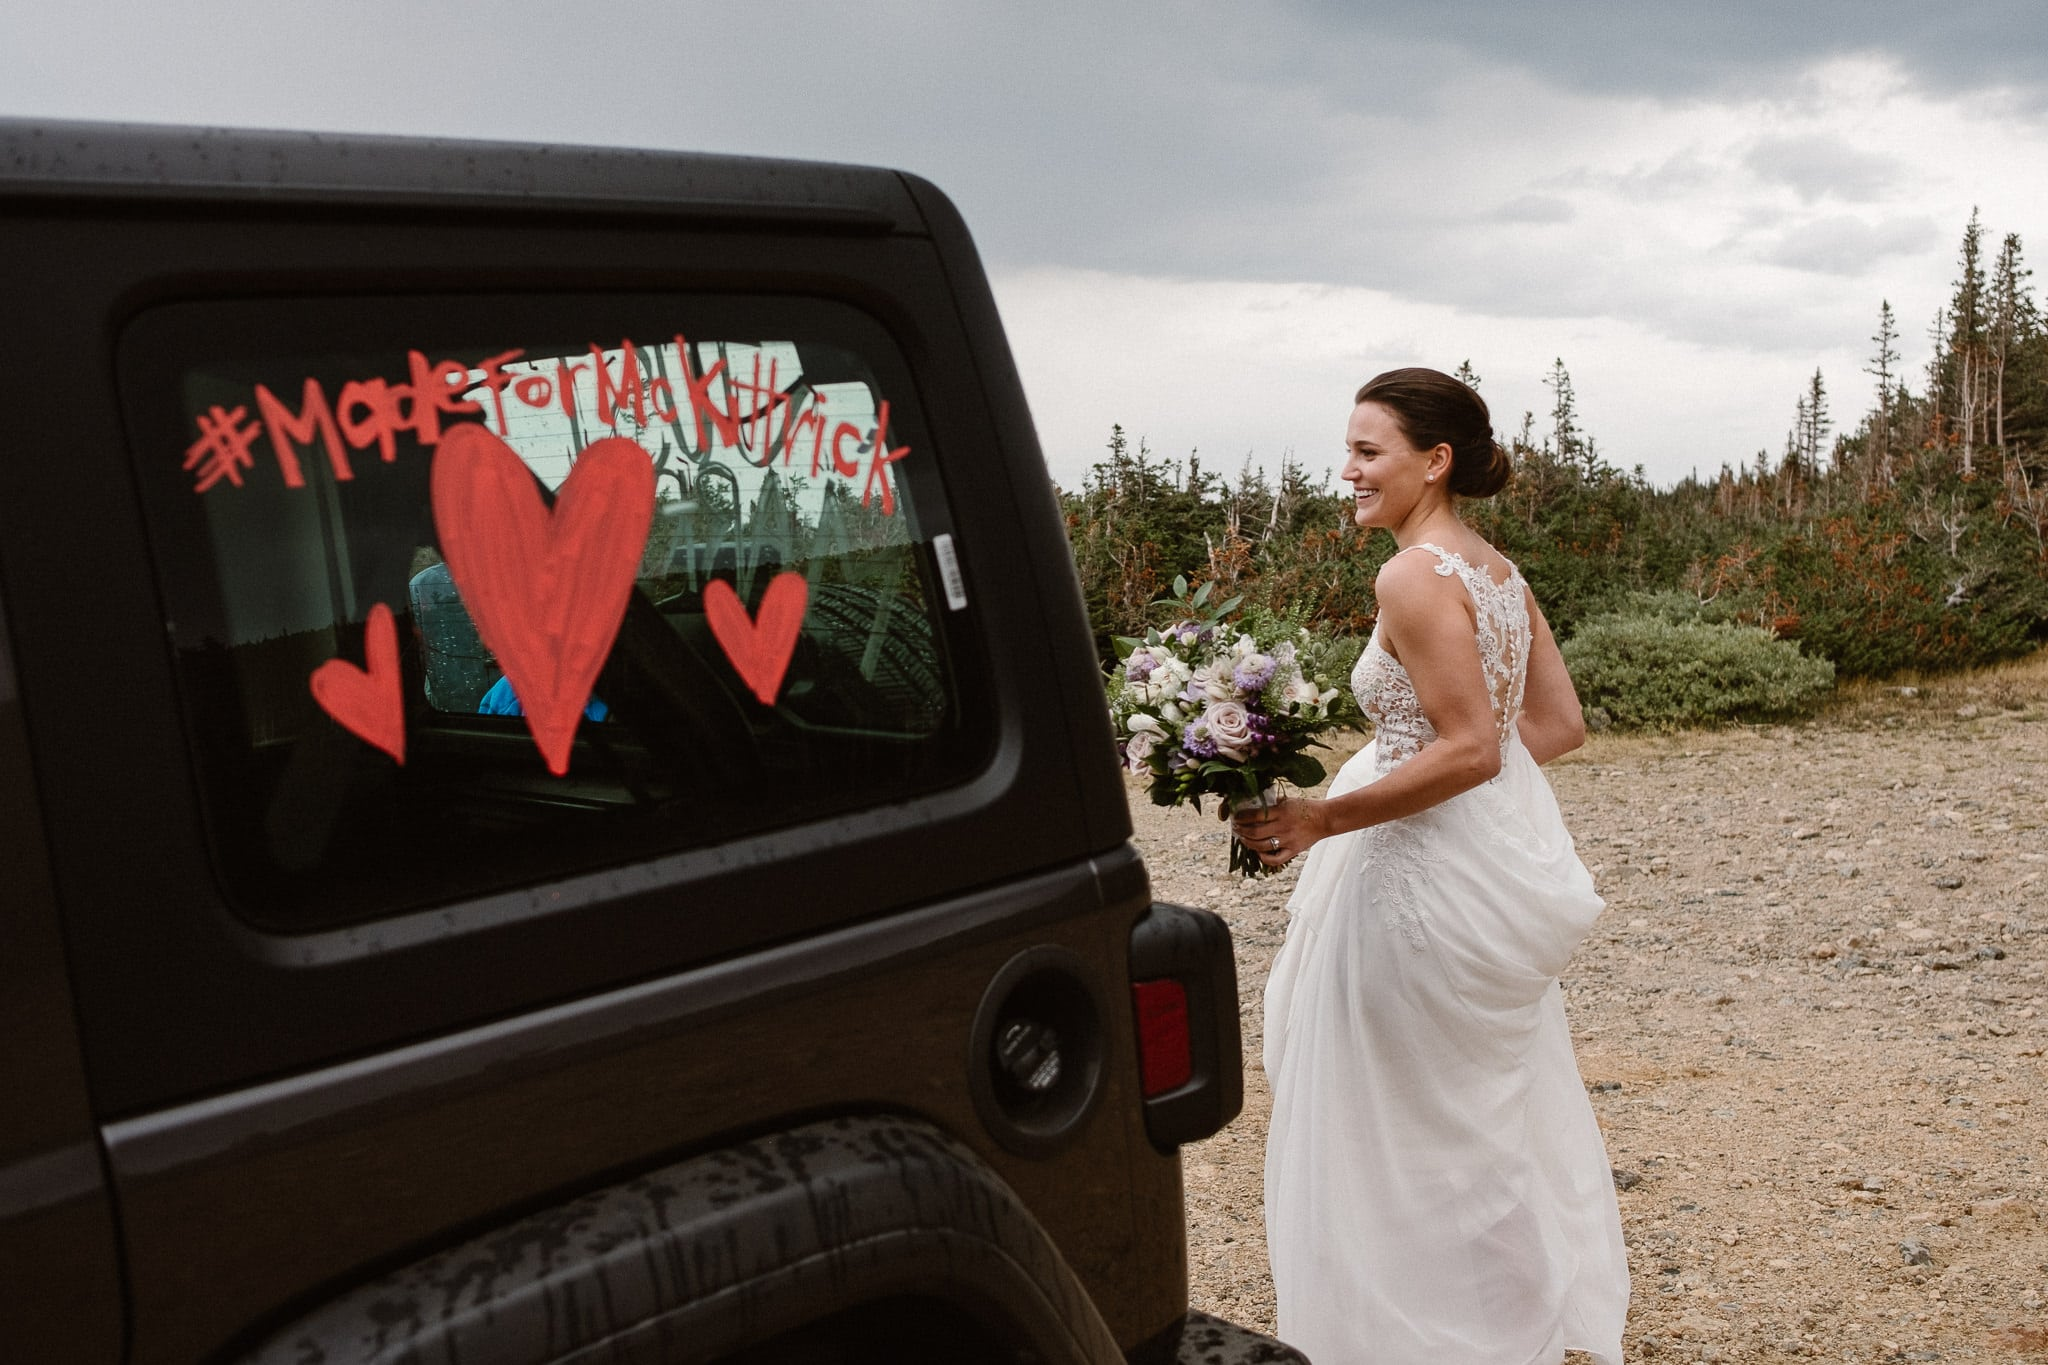 Colorado mountain elopement photographer, alpine lake adventure wedding, Boulder wedding photographer, bride and groom portraits in mountains, laidback boho wedding, hiking elopement, bride with Jeep